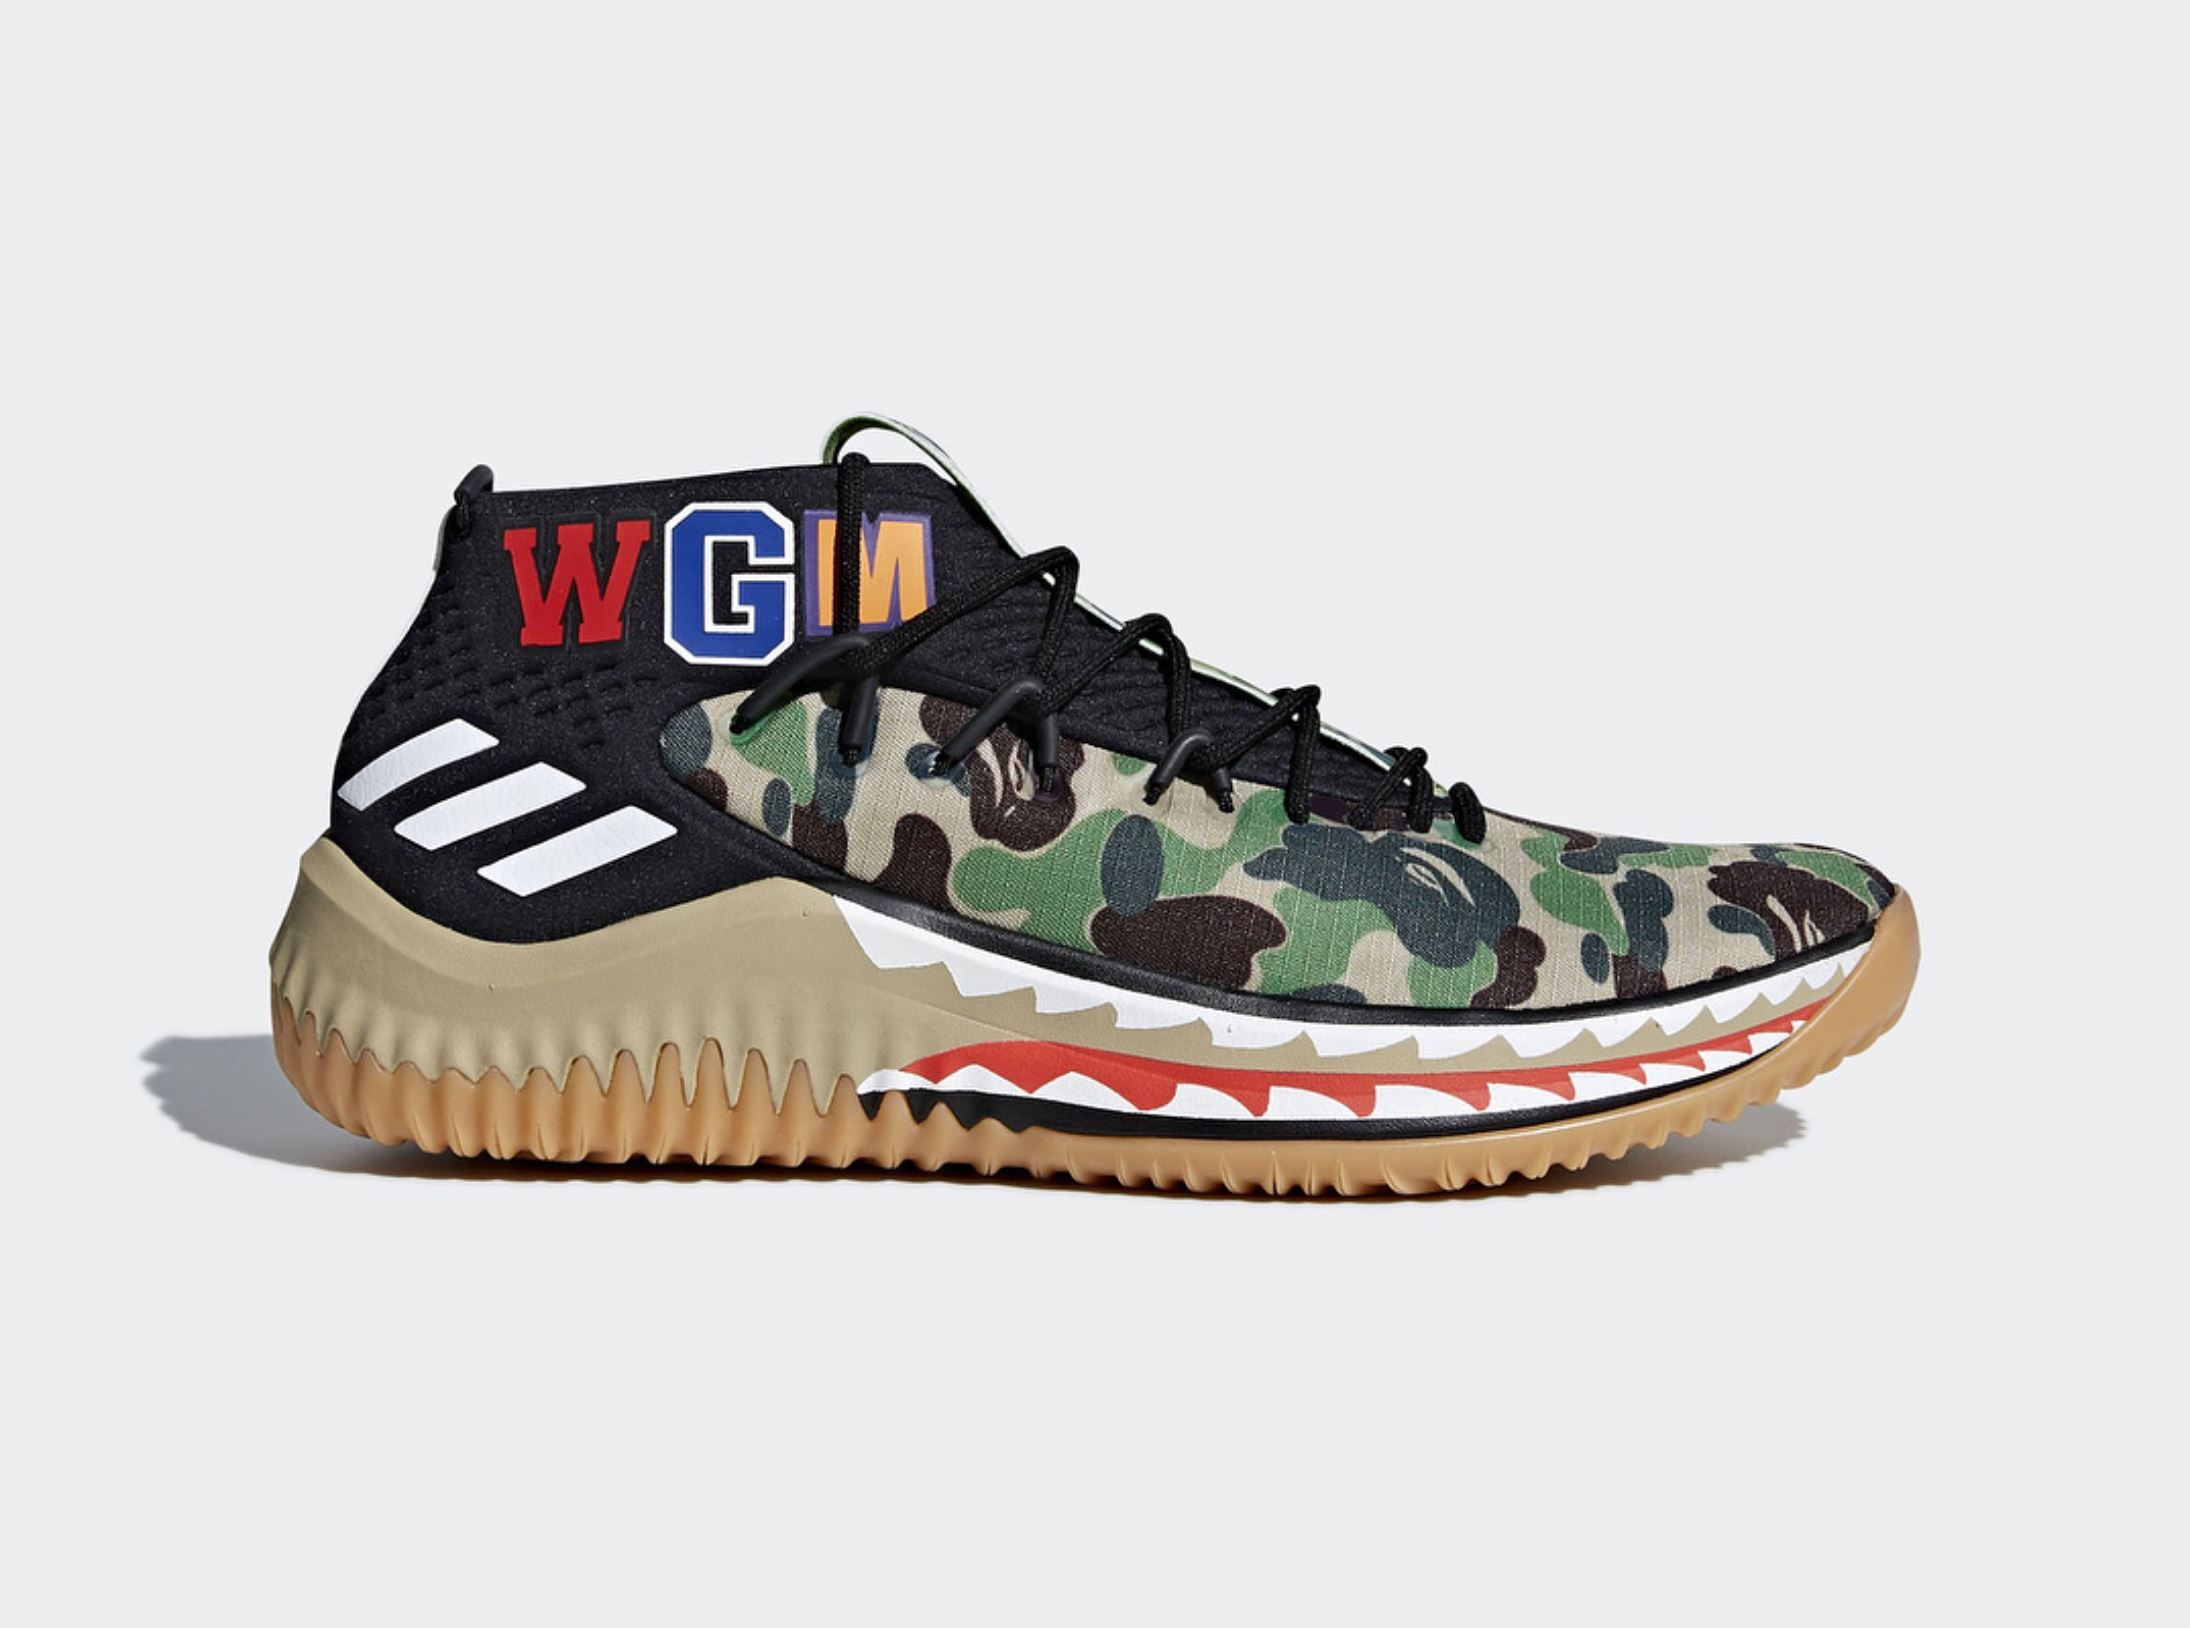 adidas dame 4 BAPE official 1